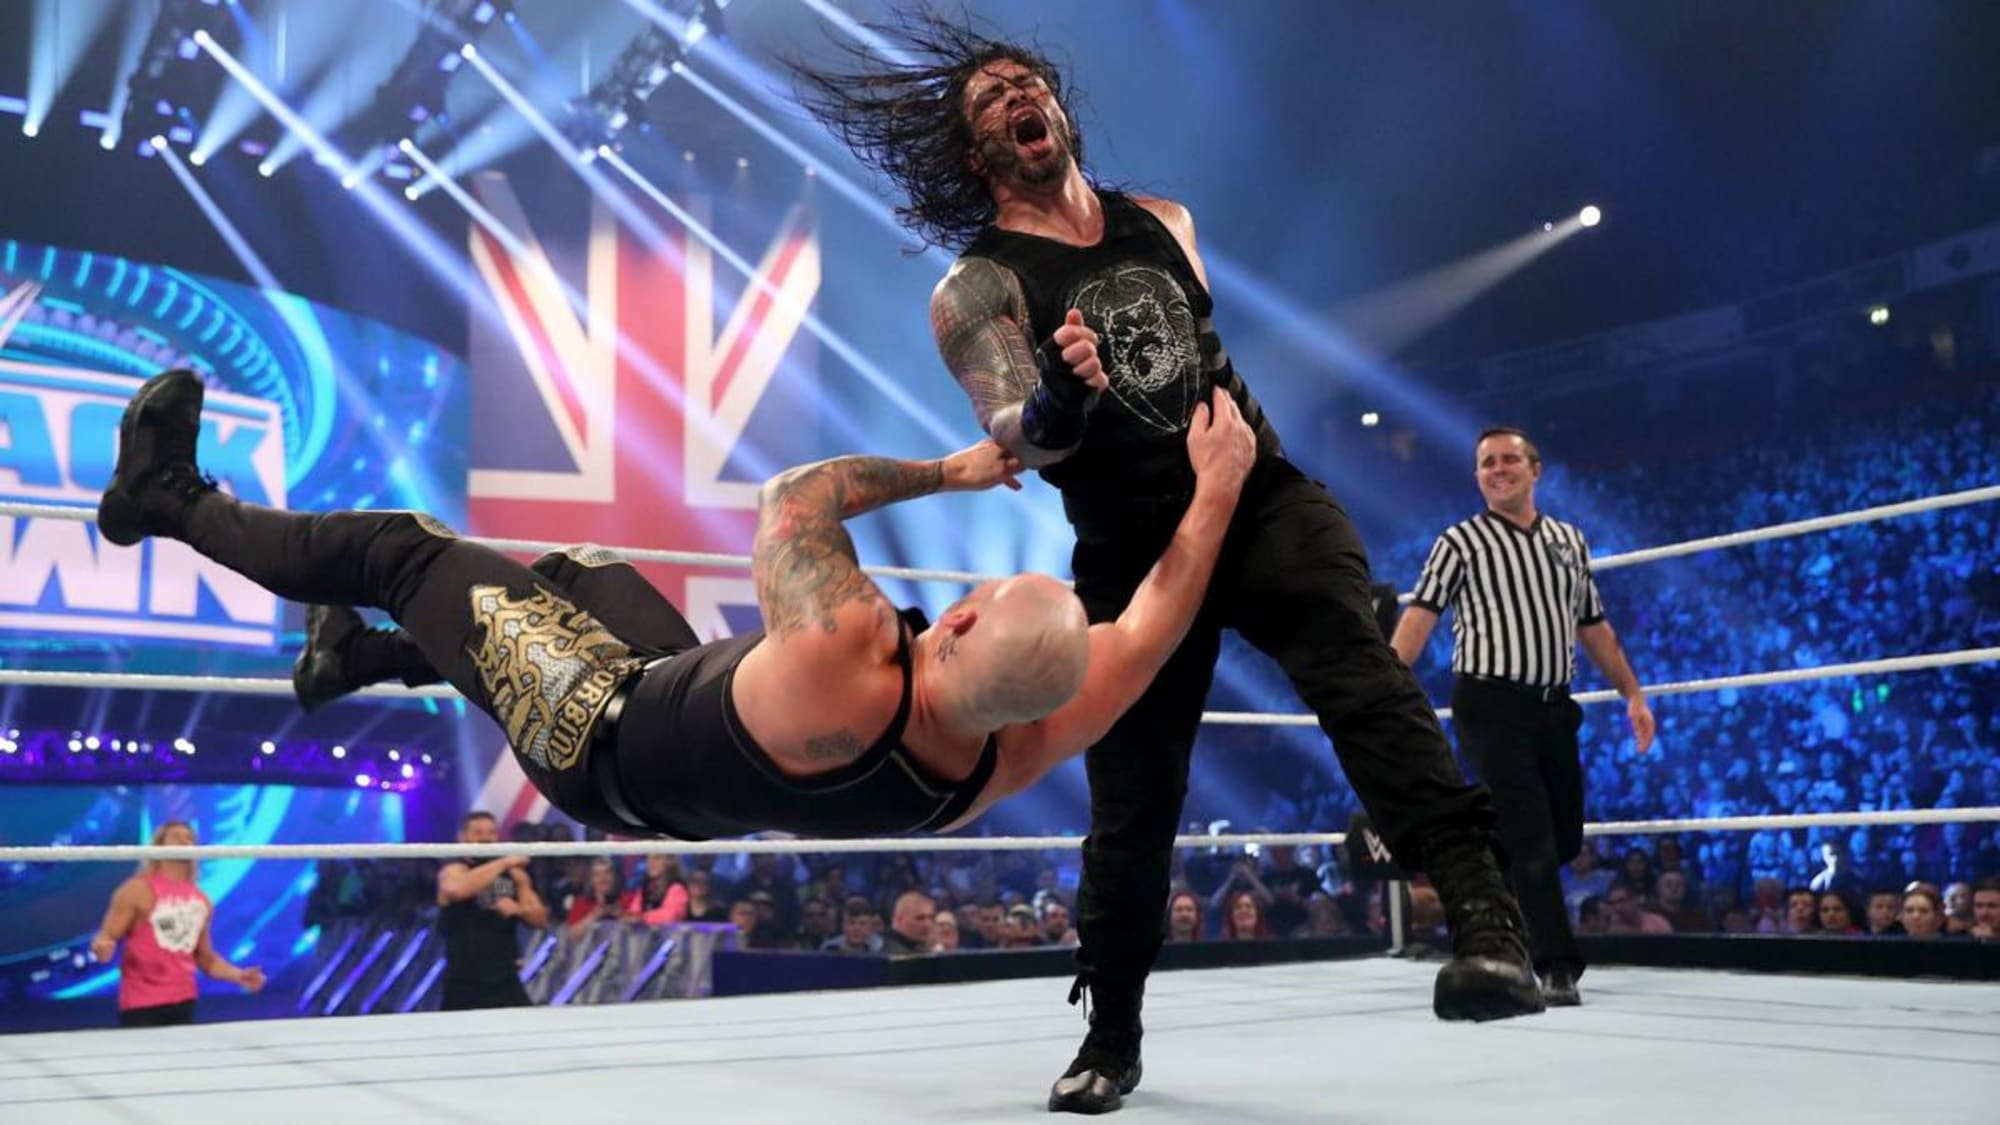 WWE SmackDown: Roman Reigns and Jey Uso win main event